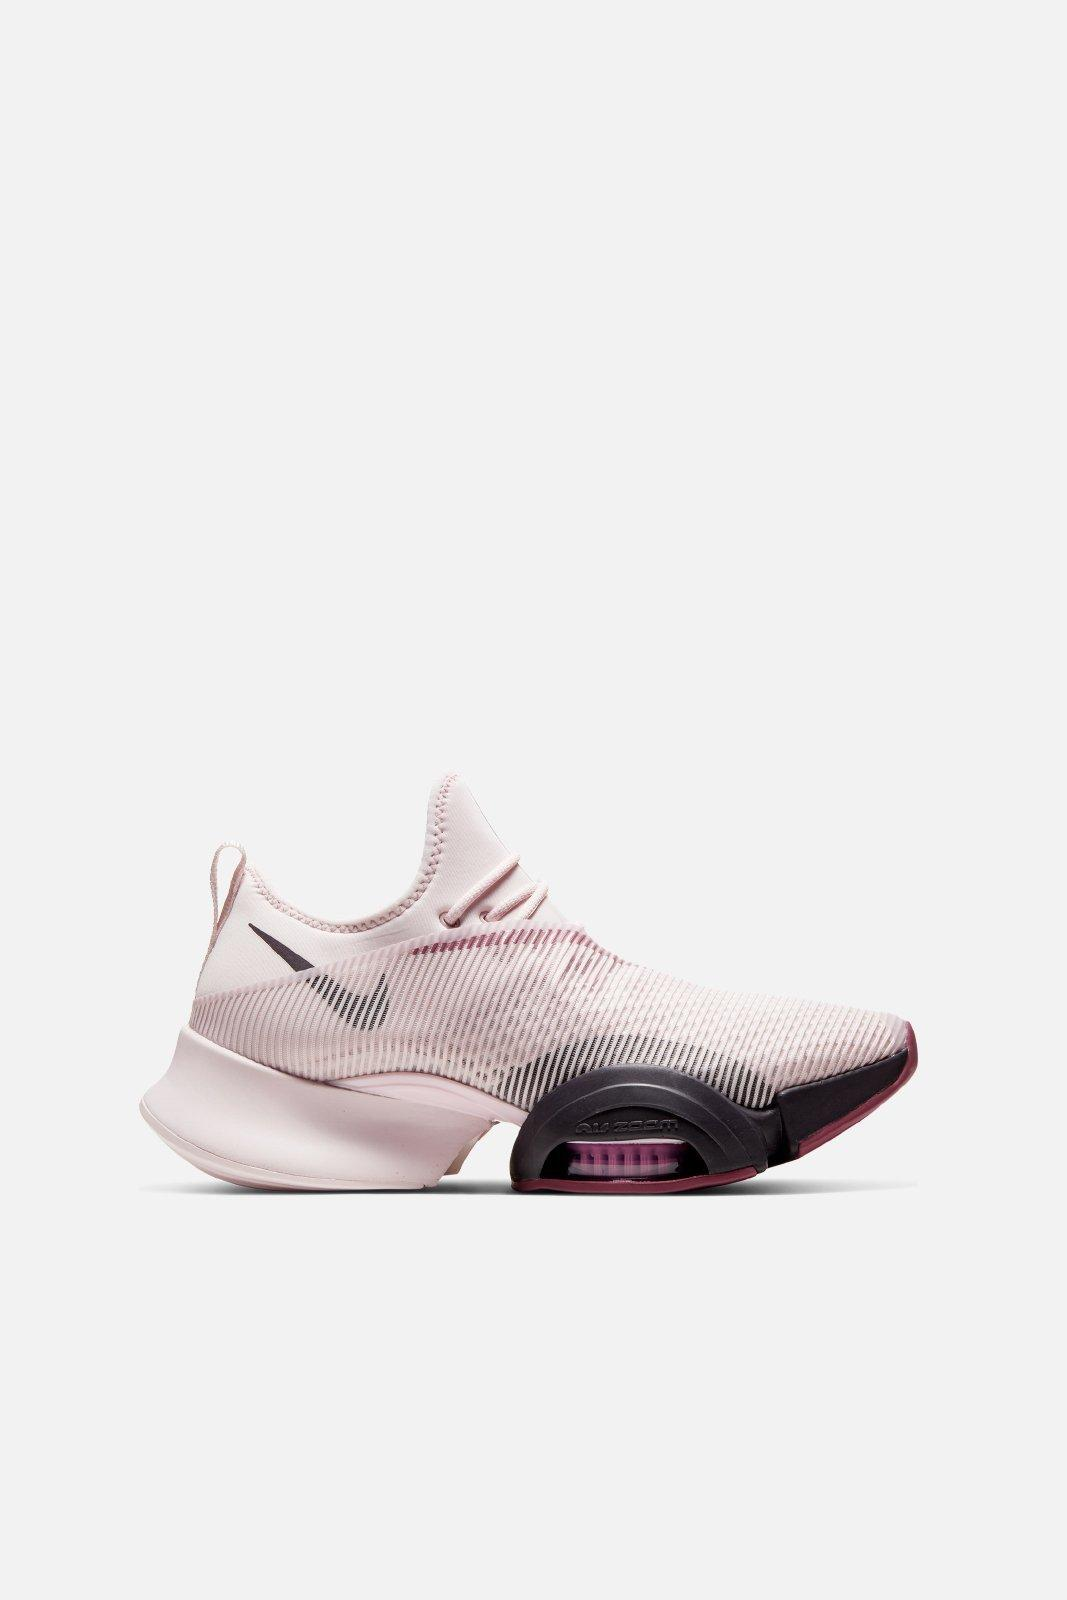 Nike Rubber Air Zoom Superrep Training Shoes - Lyst